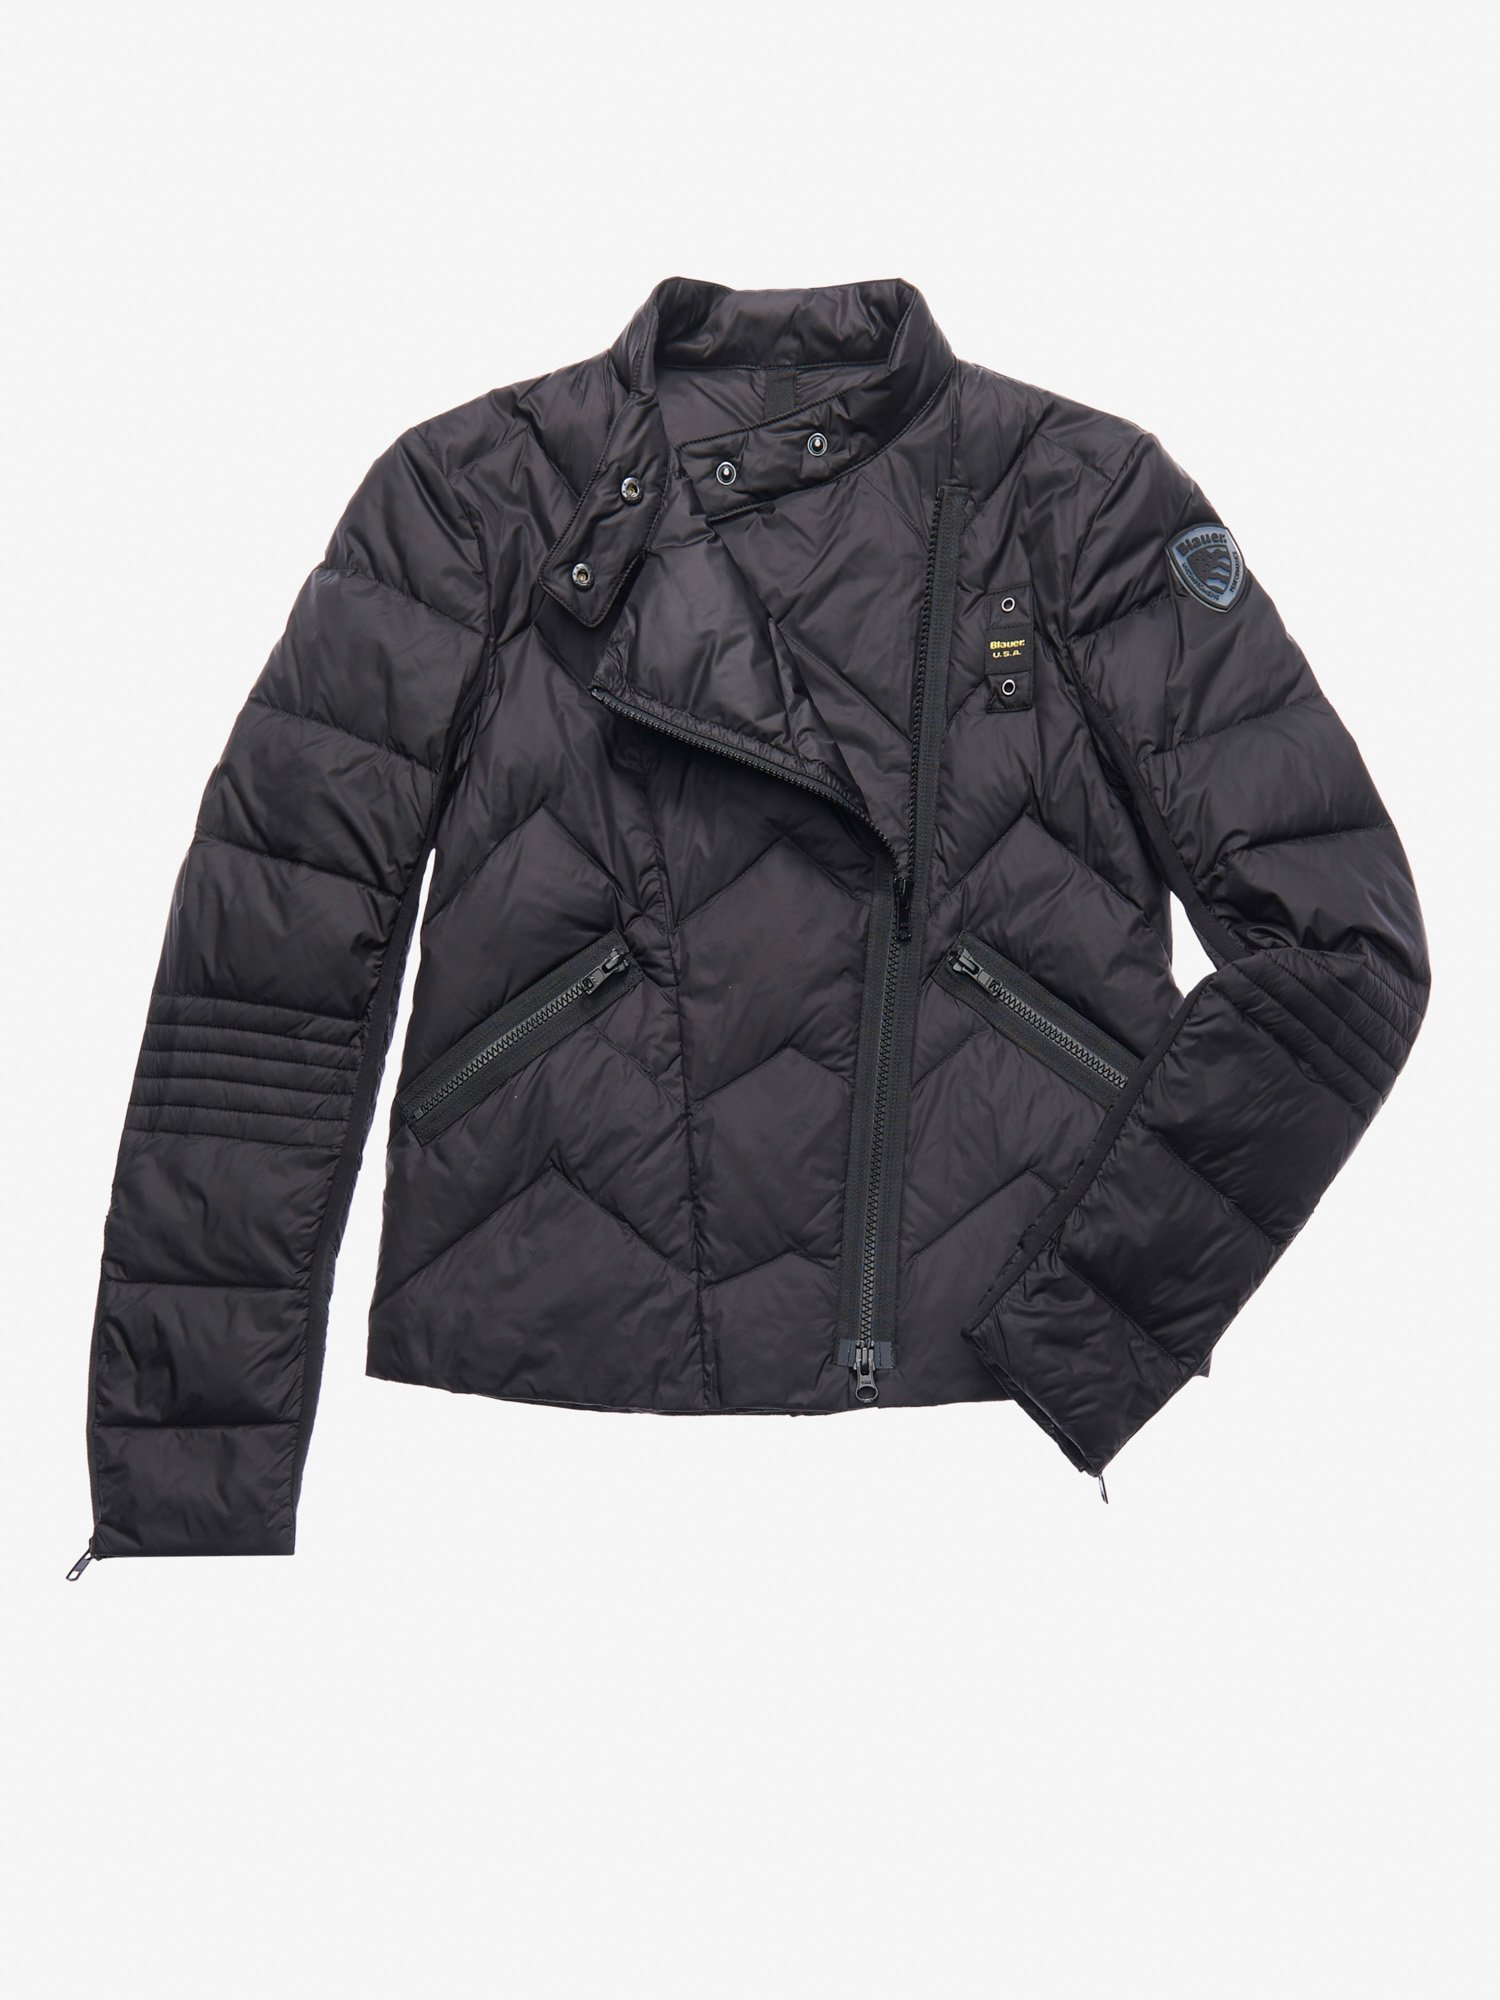 COOPER 60 GR SHORT DOWN JACKET - Blauer